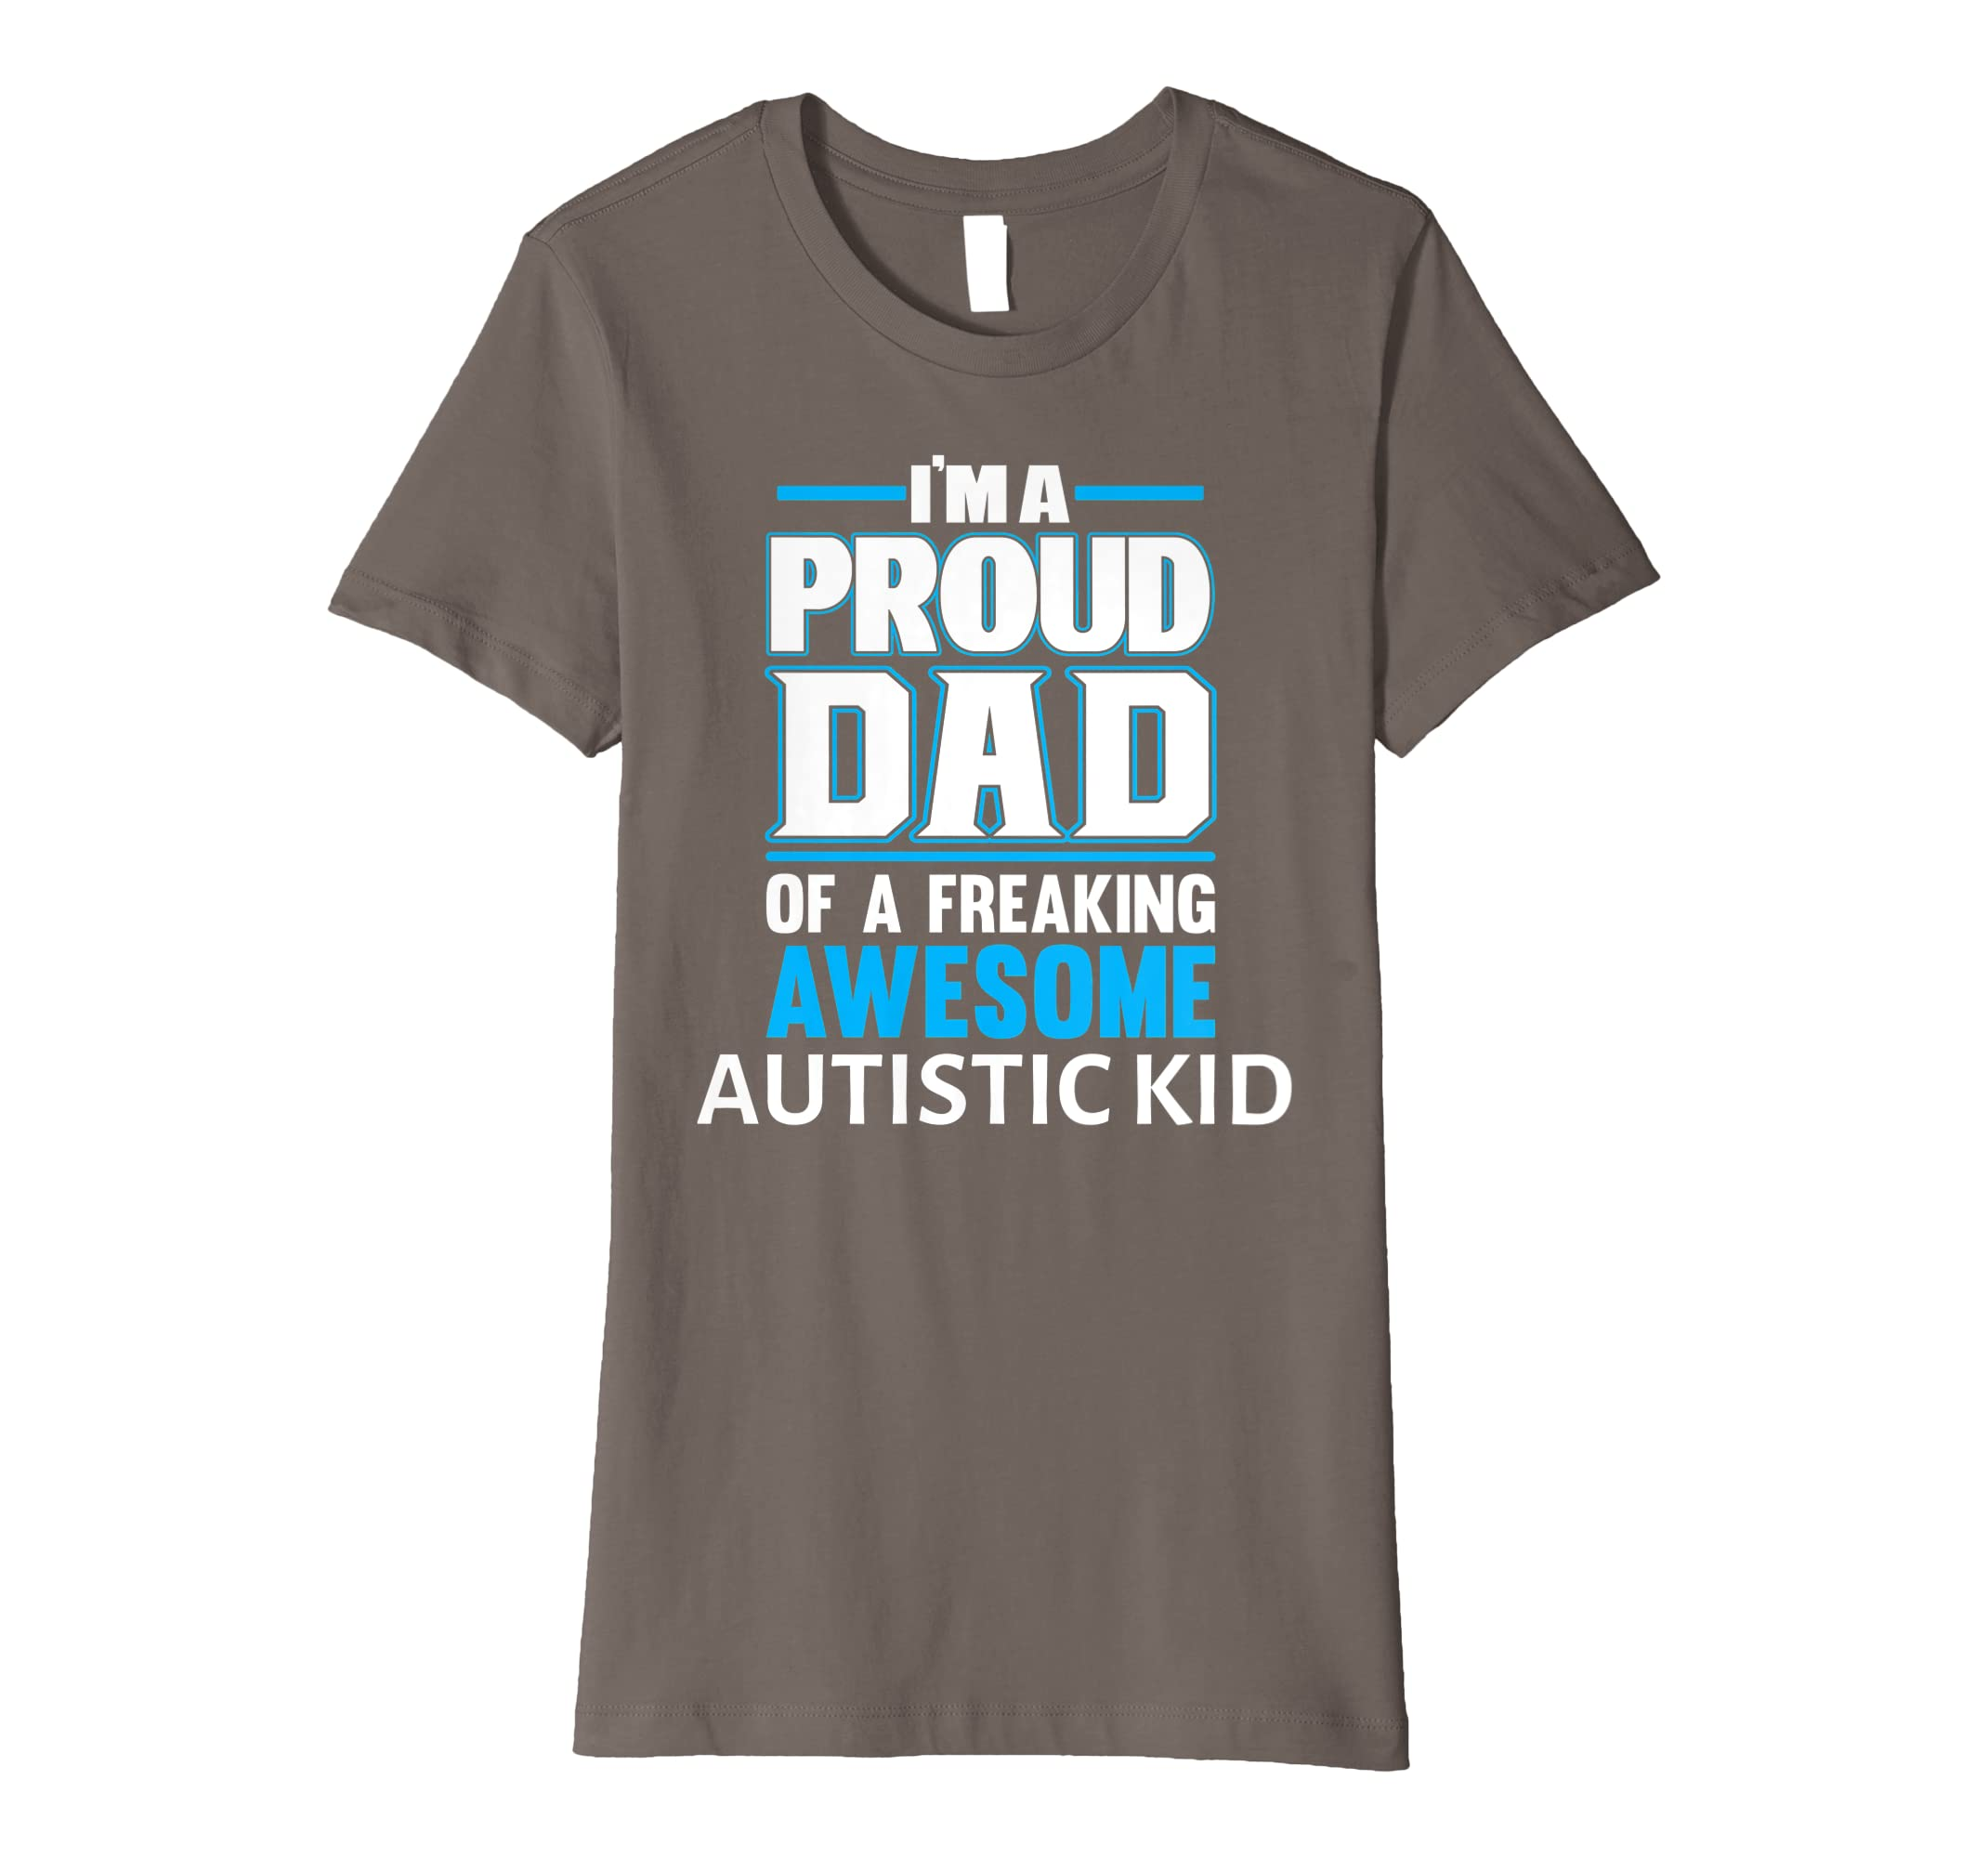 eae84eca Amazon.com: Im a proud dad of a freaking awesome Autistic Kid Premium T- Shirt: Clothing